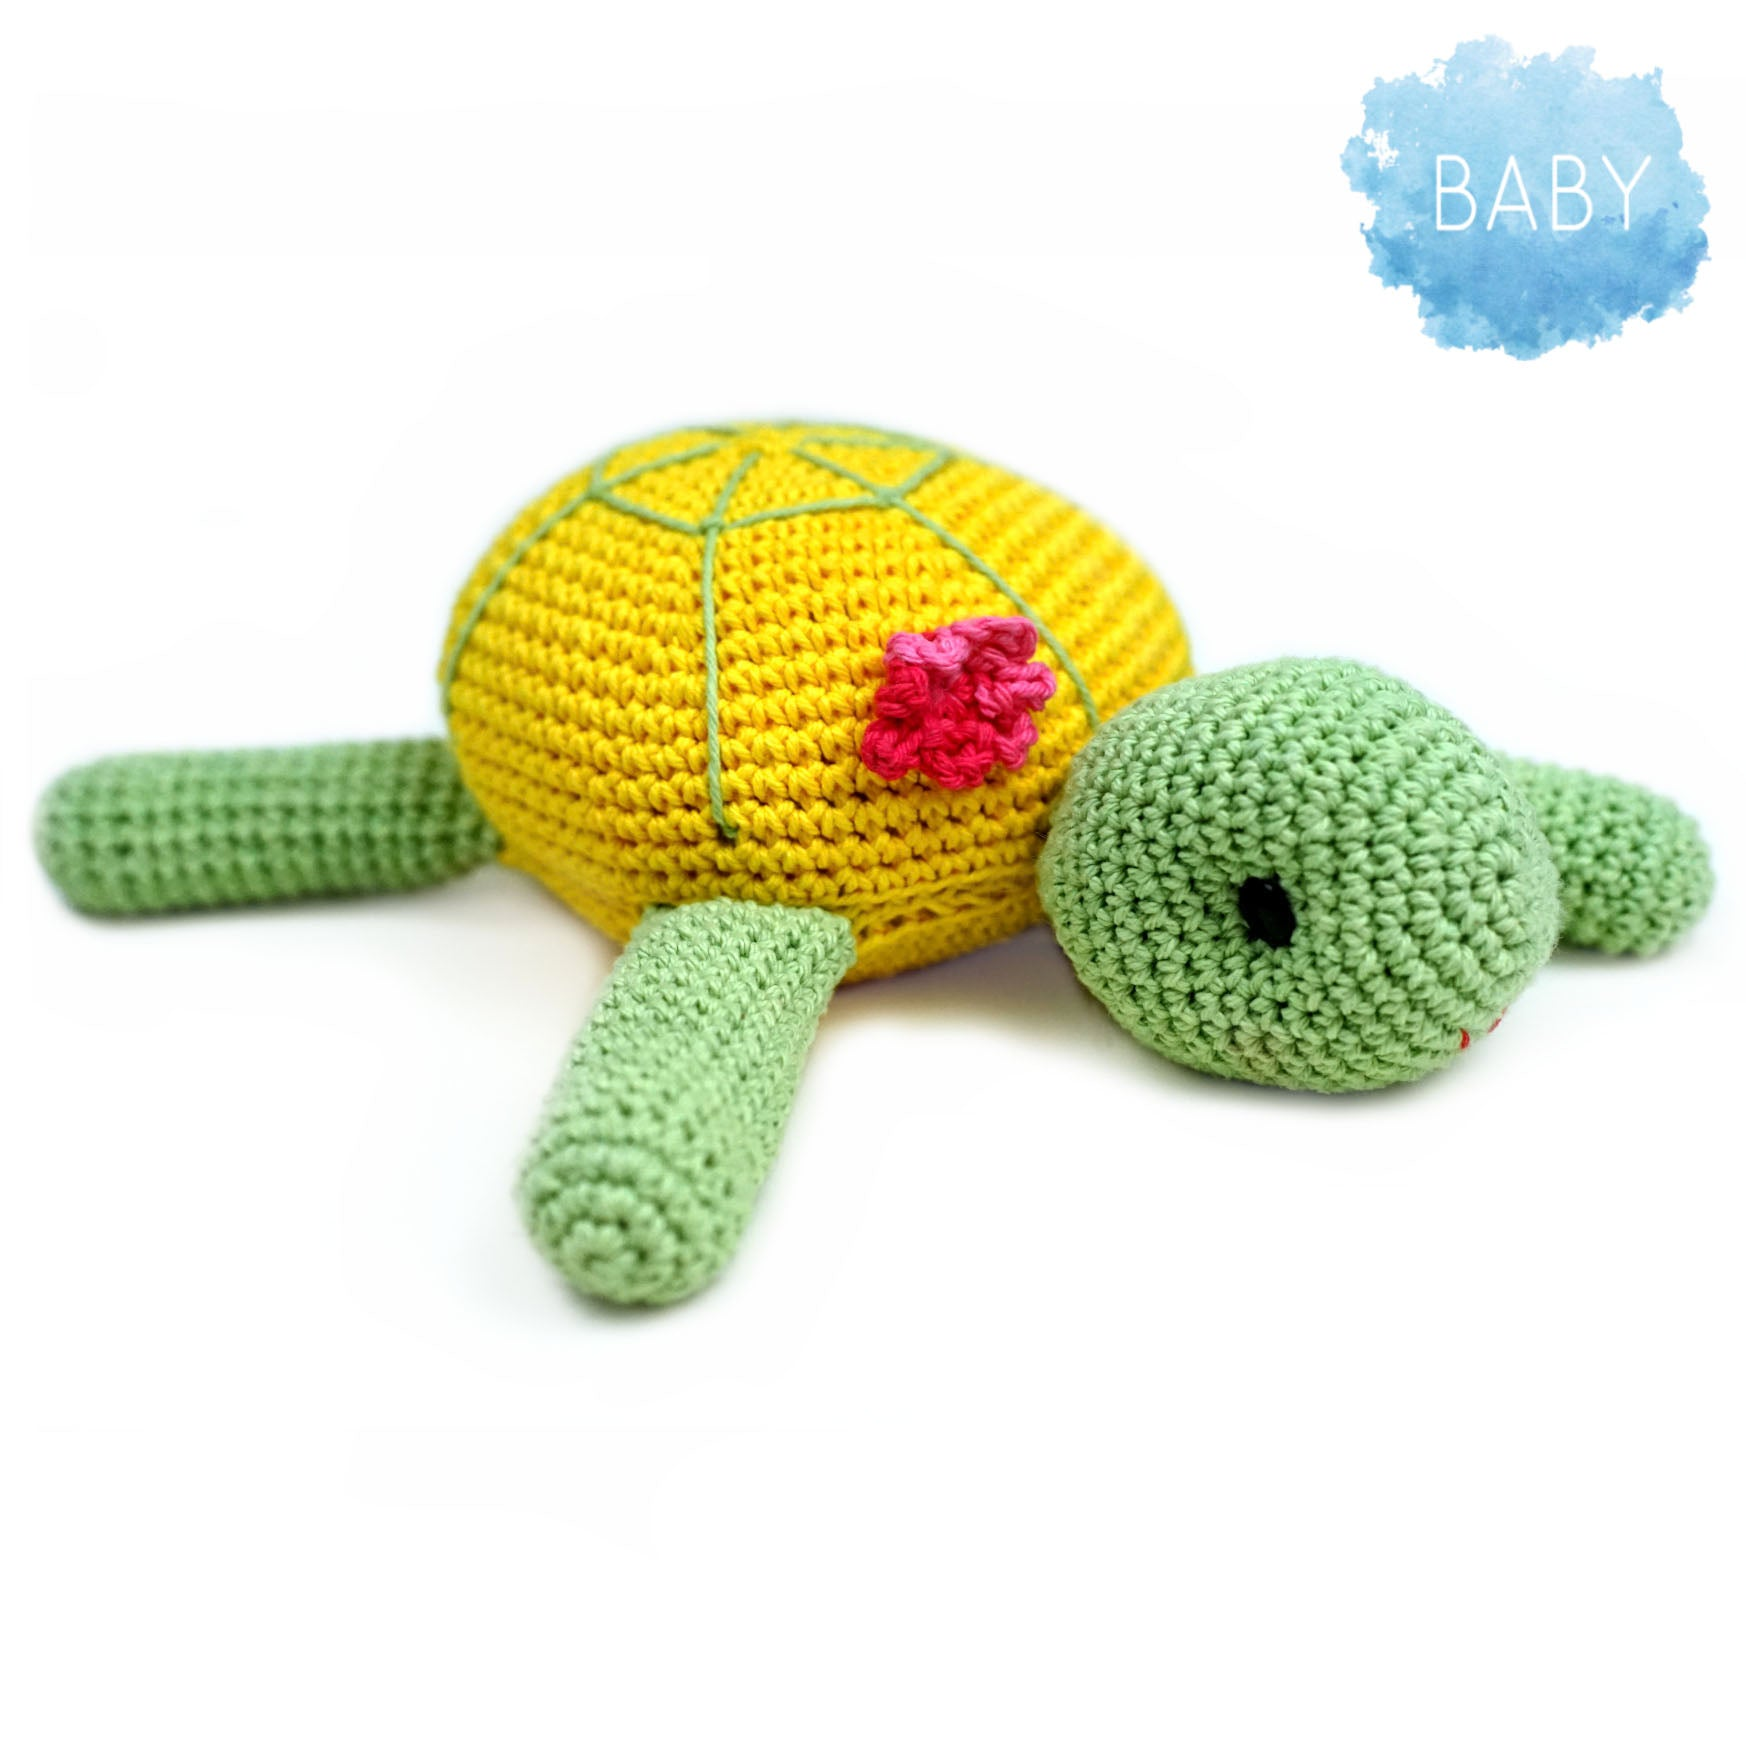 Turkin Turtle | Toys | Arunny | [product_tag] - Fair Bazaar Ethical Living